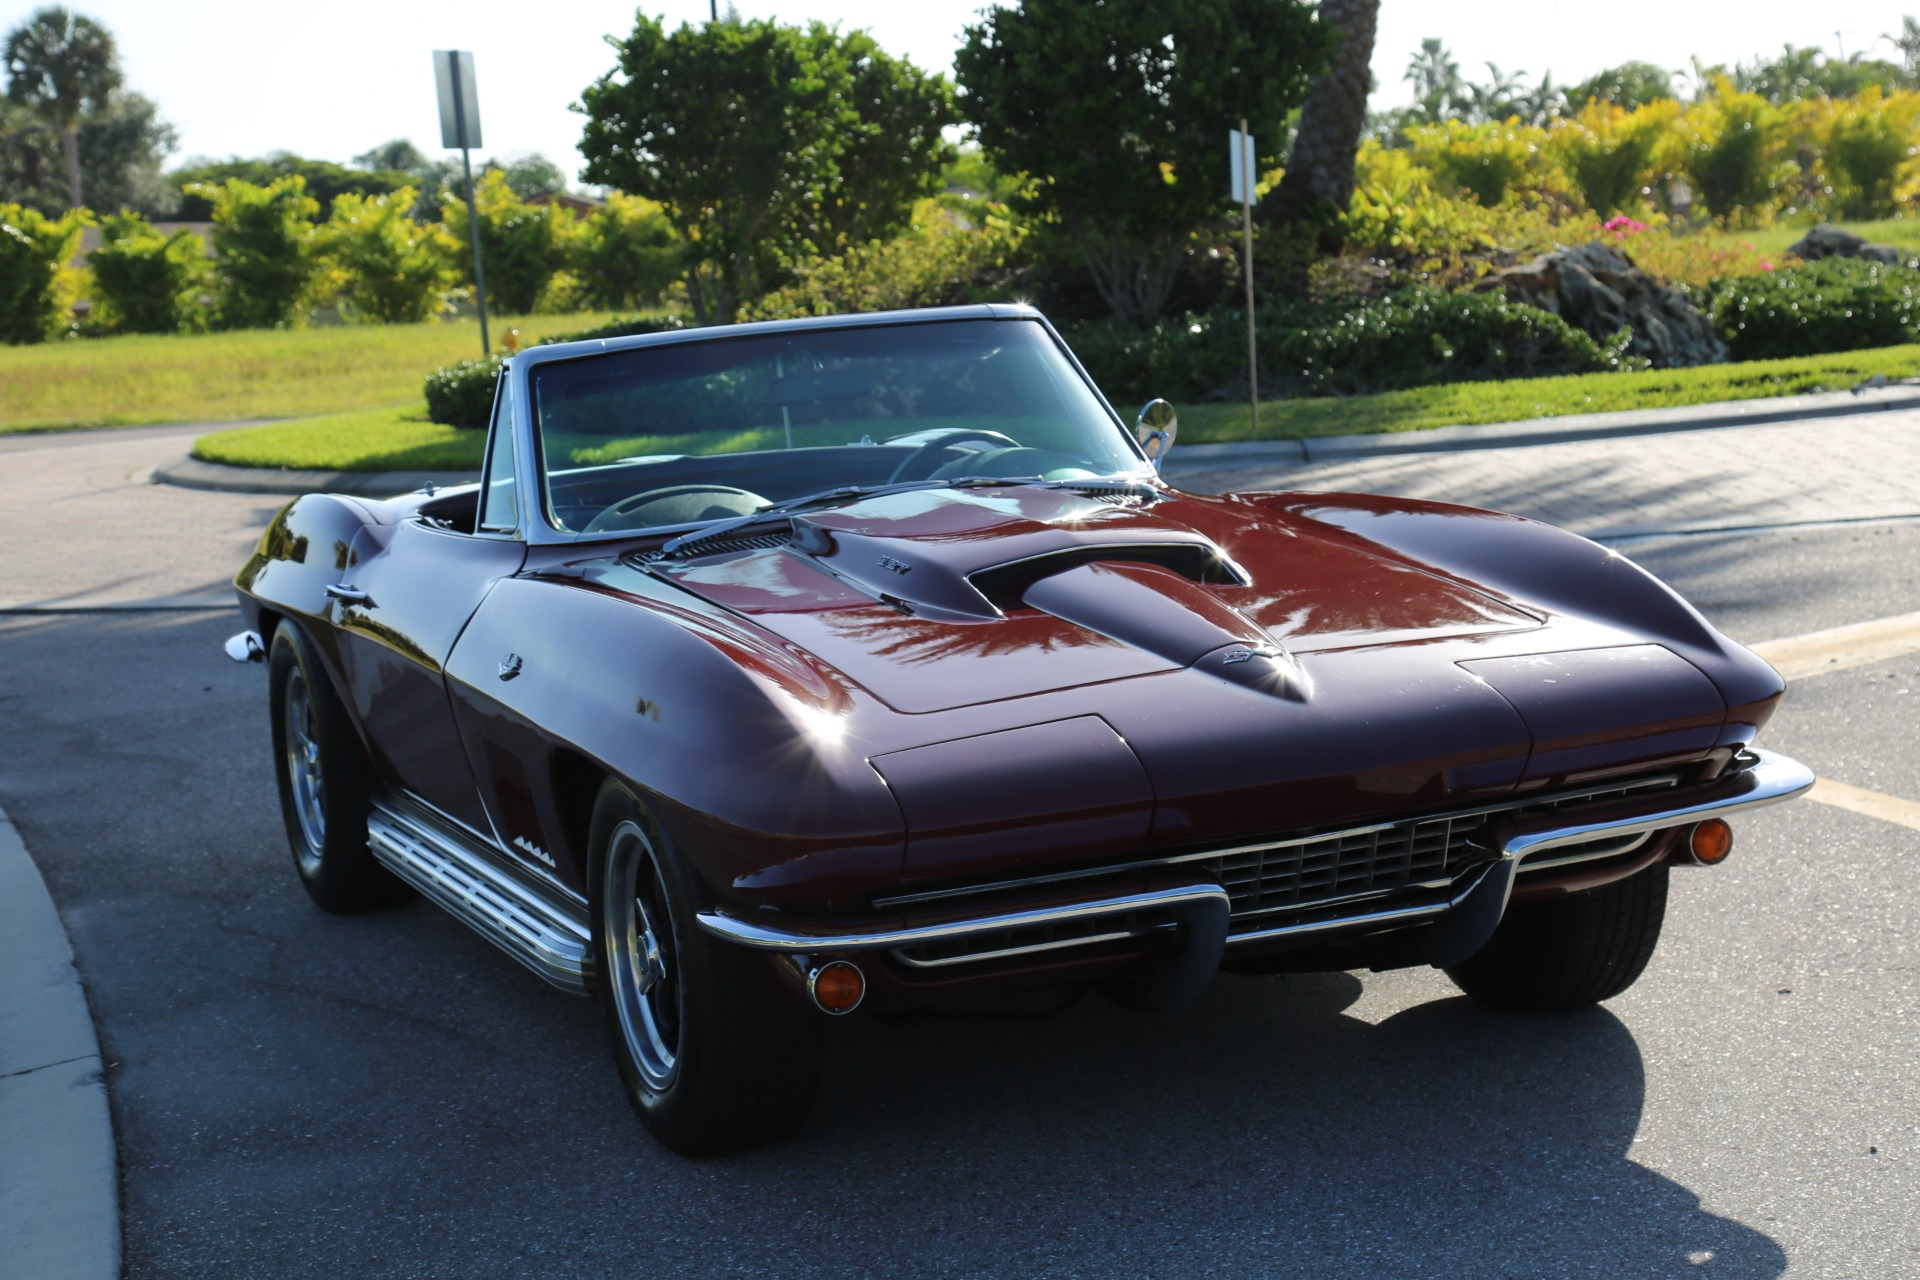 Used 1964 Chevrolet Corvette Stingray for sale $42,000 at Muscle Cars for Sale Inc. in Fort Myers FL 33912 7